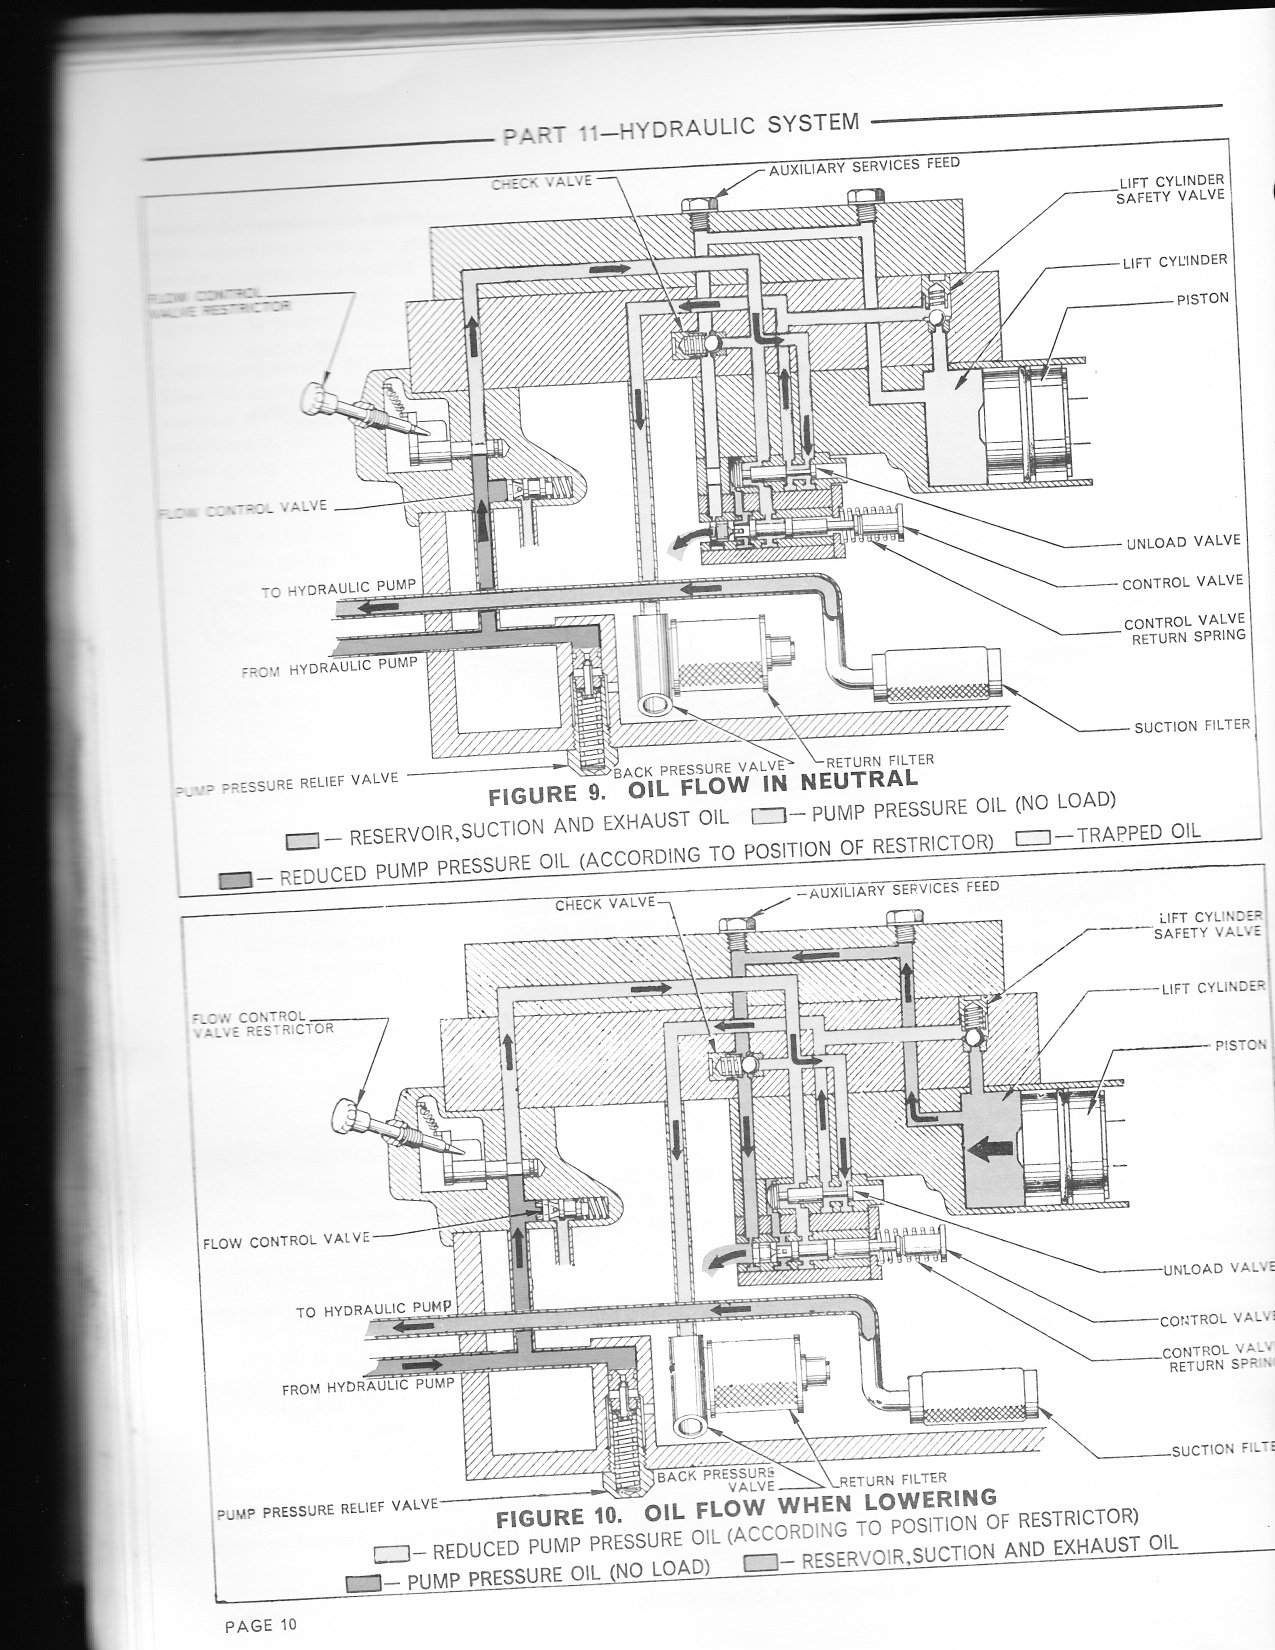 Where Do I Hook Up The Auxillary Hydraulics On A Ford 3000 Tractor 1910 Electrical Wiring Diagram Im Sending You Schematic Of Oil Flow Reading This Shows Me That Is Returned Through Same Plug When Selector Valve Position